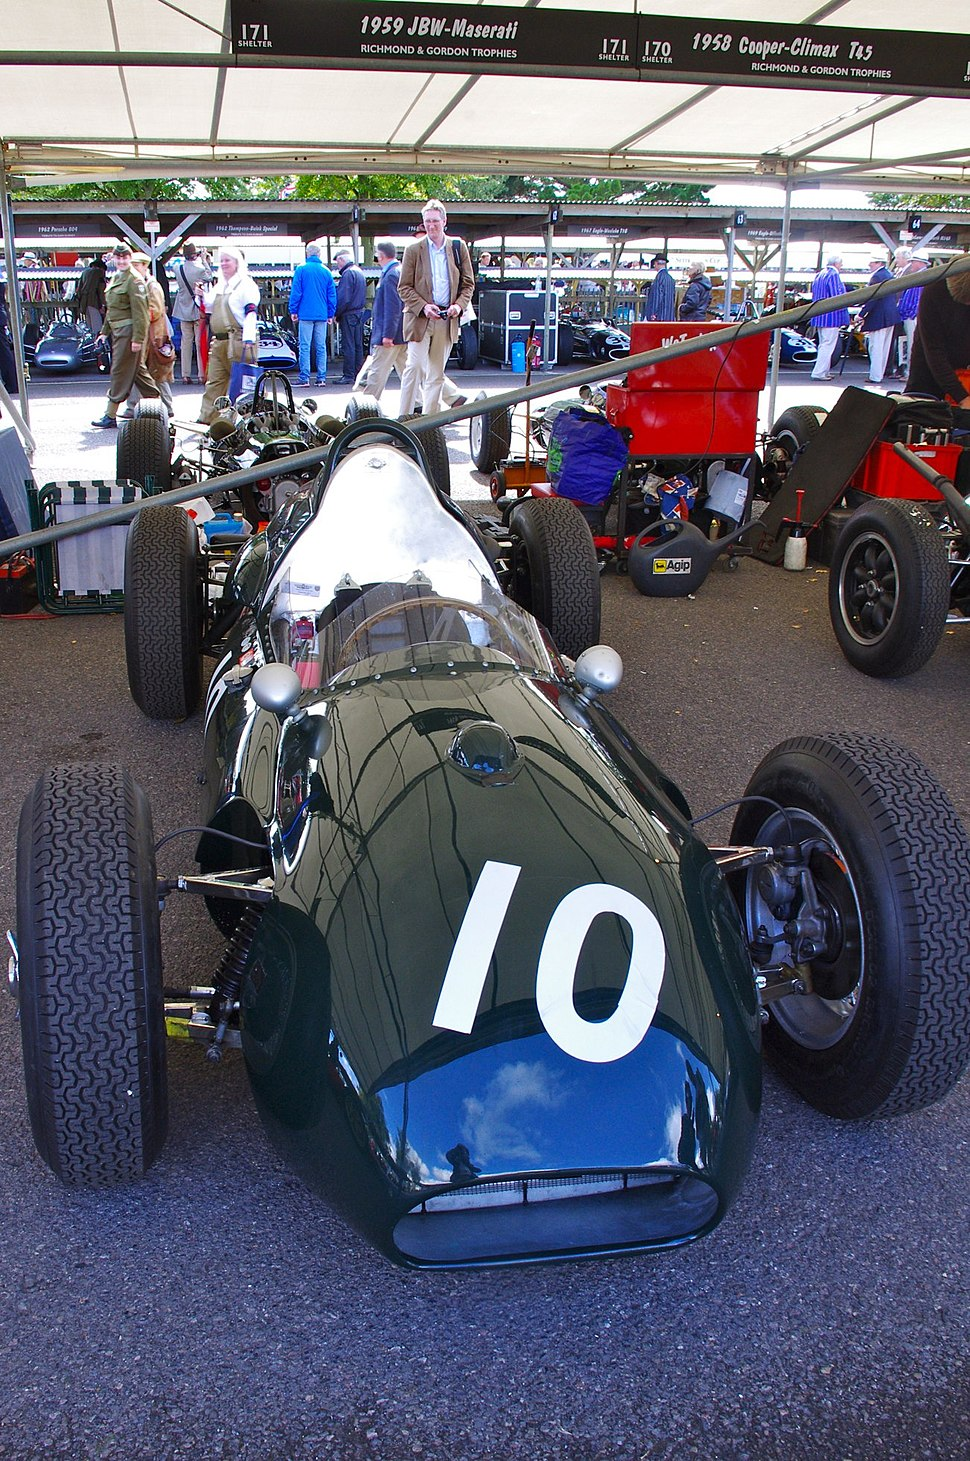 JBW Type 1 at Goodwood Revival 2012